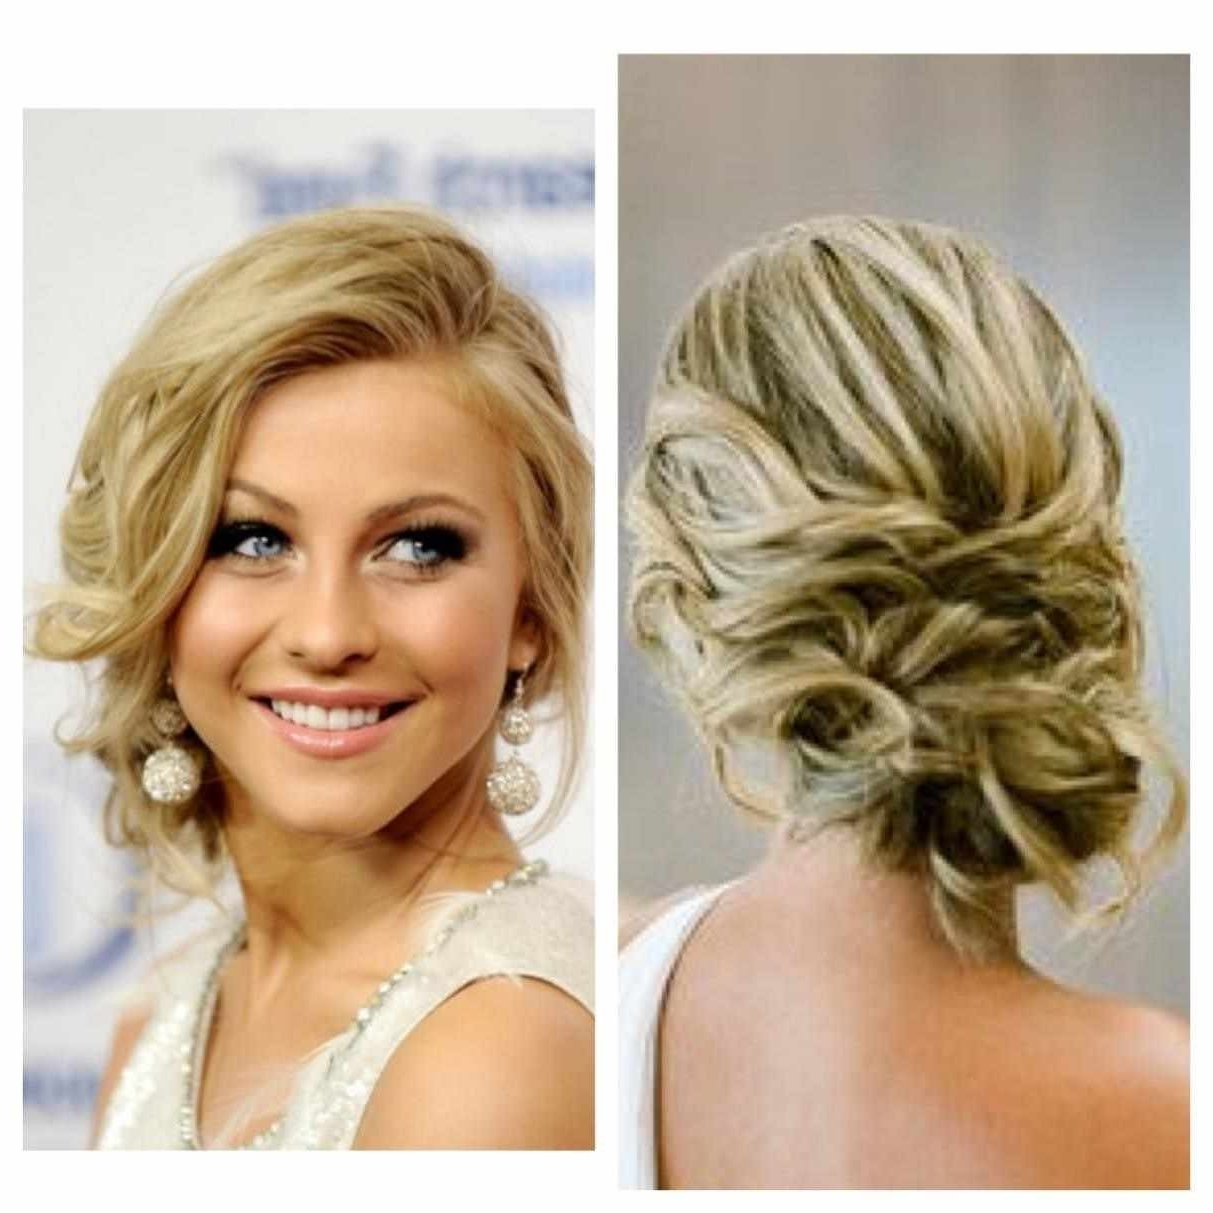 2017 Short Wedding Hairstyles For Bridesmaids In Short Hairstyles : Bridesmaid Hairstyles For Short Hair Photo (View 8 of 15)